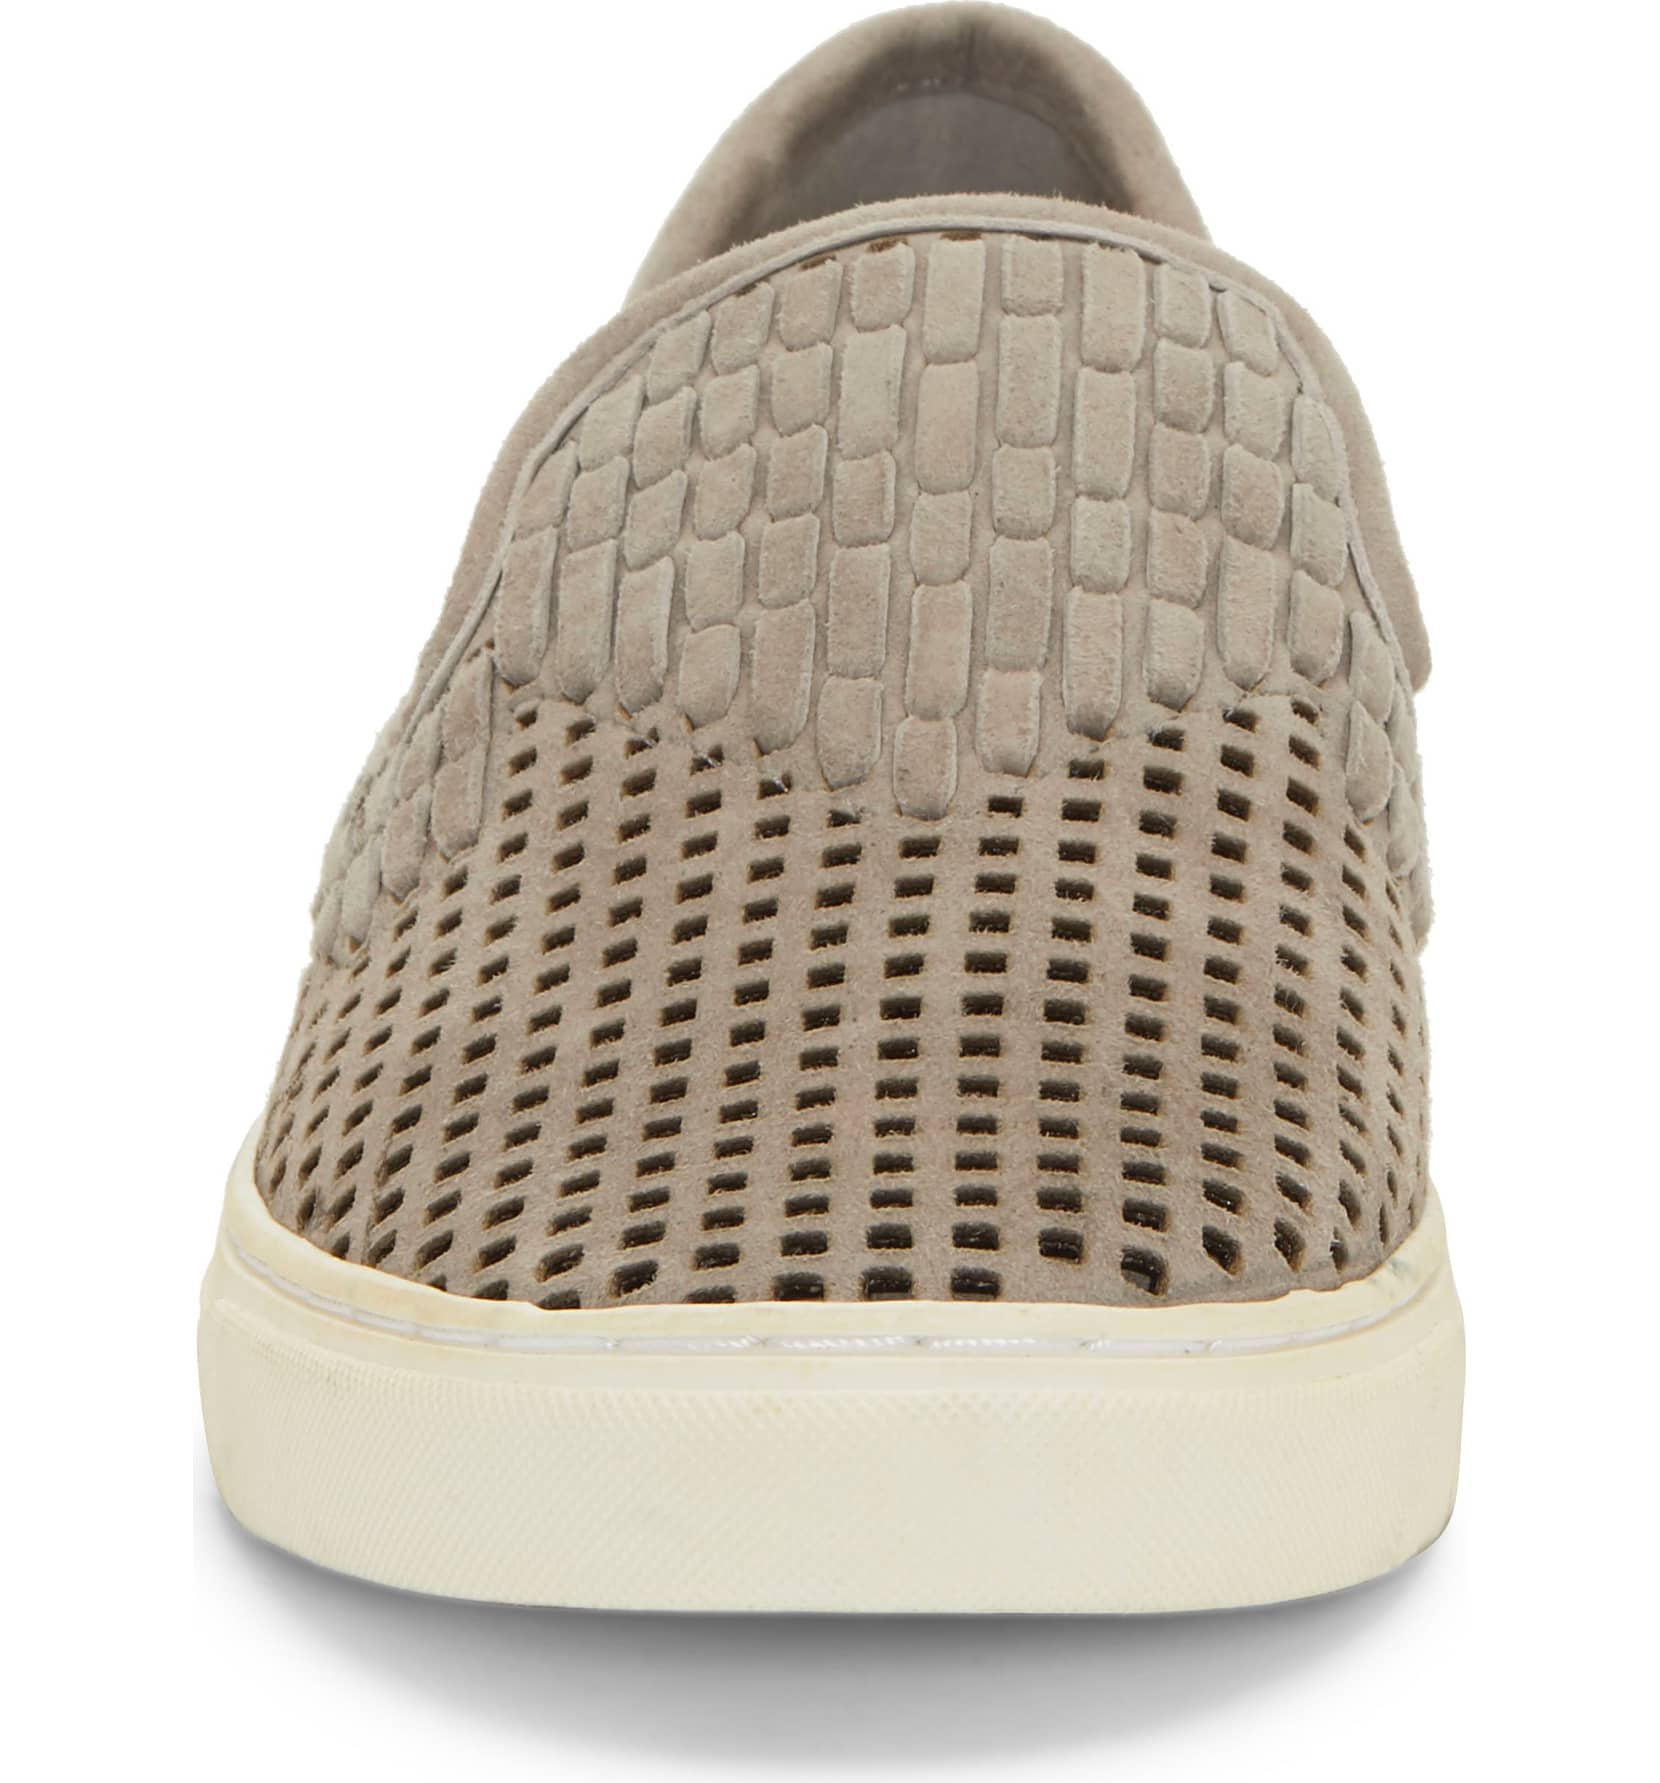 Vince-Camuto-Bristie-Storm-Grey-Leather-Woven-White-Sole-Slip-On-Sneakers thumbnail 24